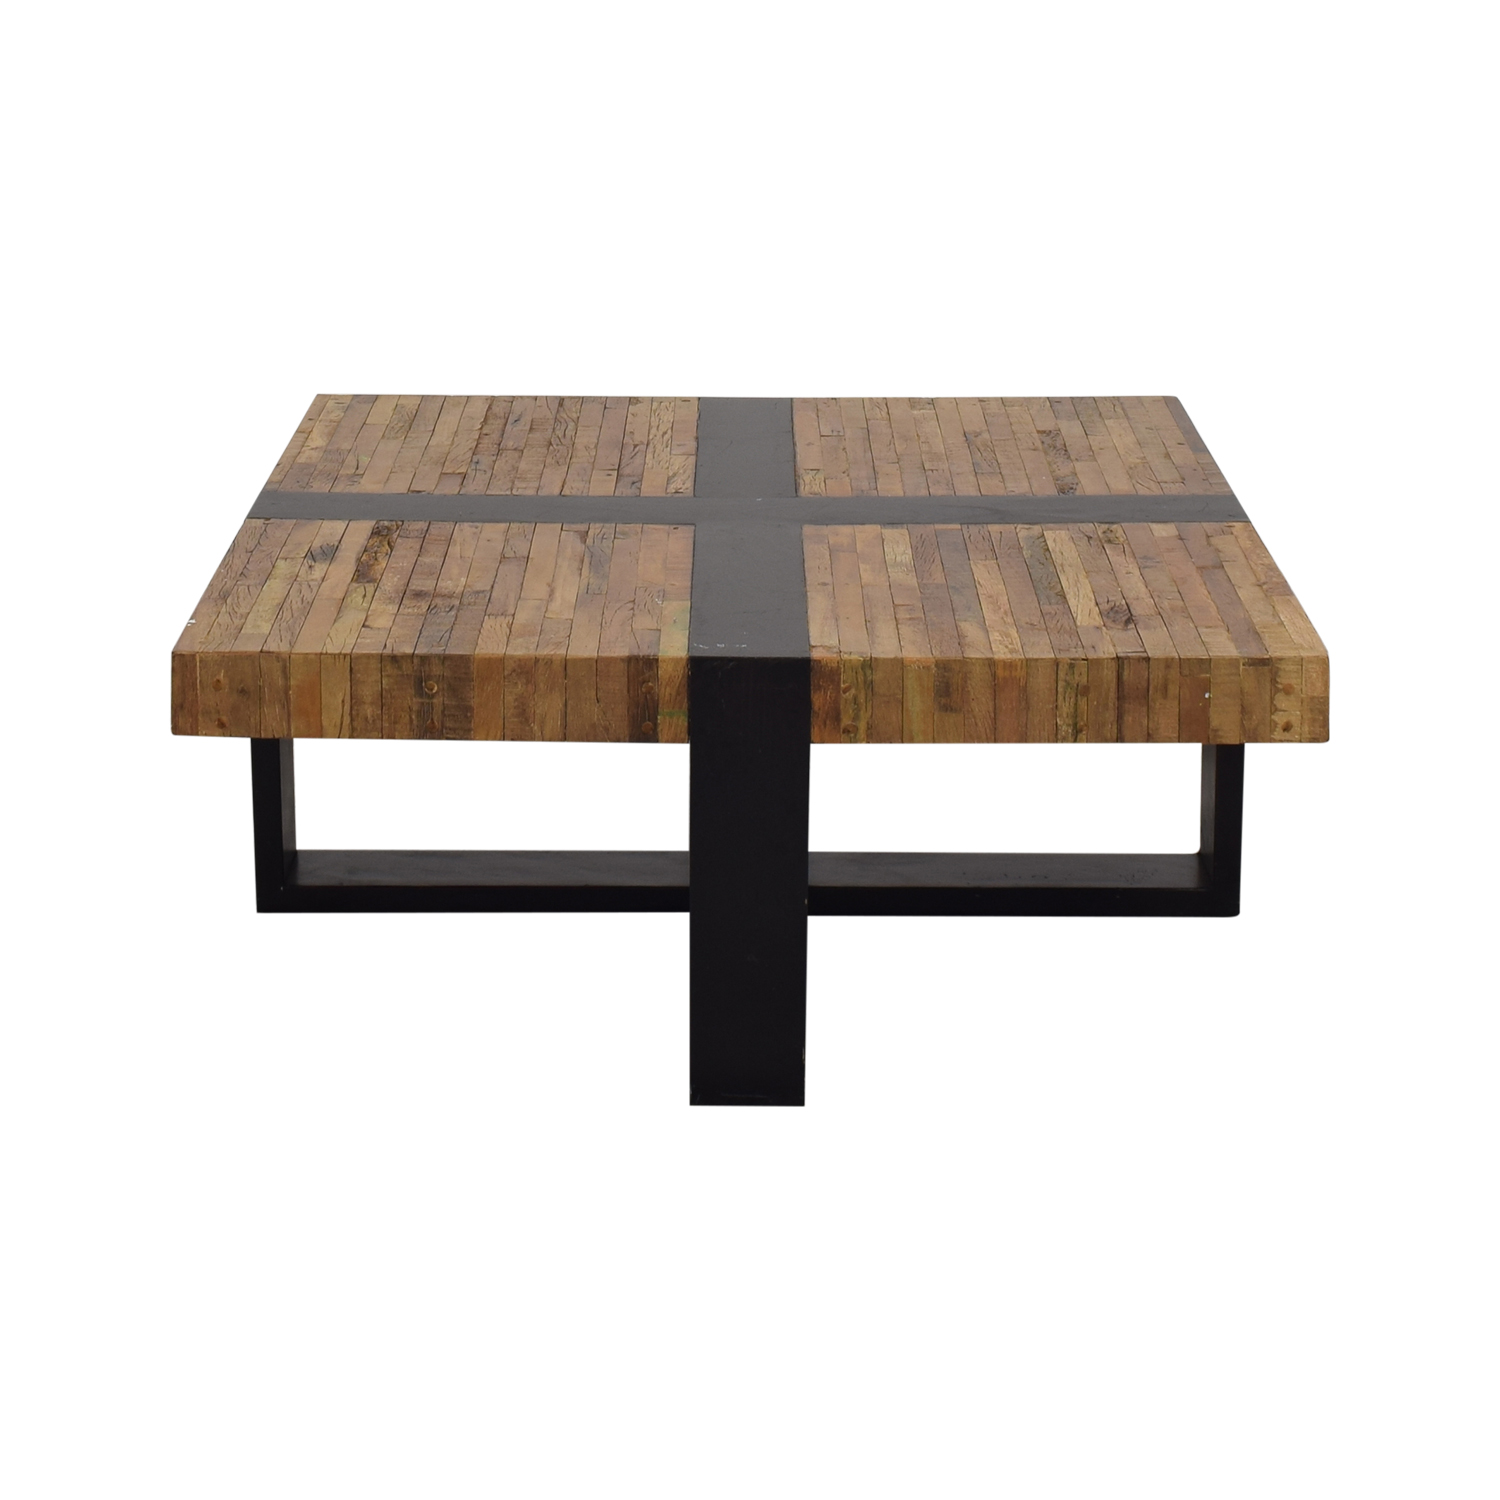 Crate & Barrel Crate & Barrel Seguro Square Coffee Table Tables